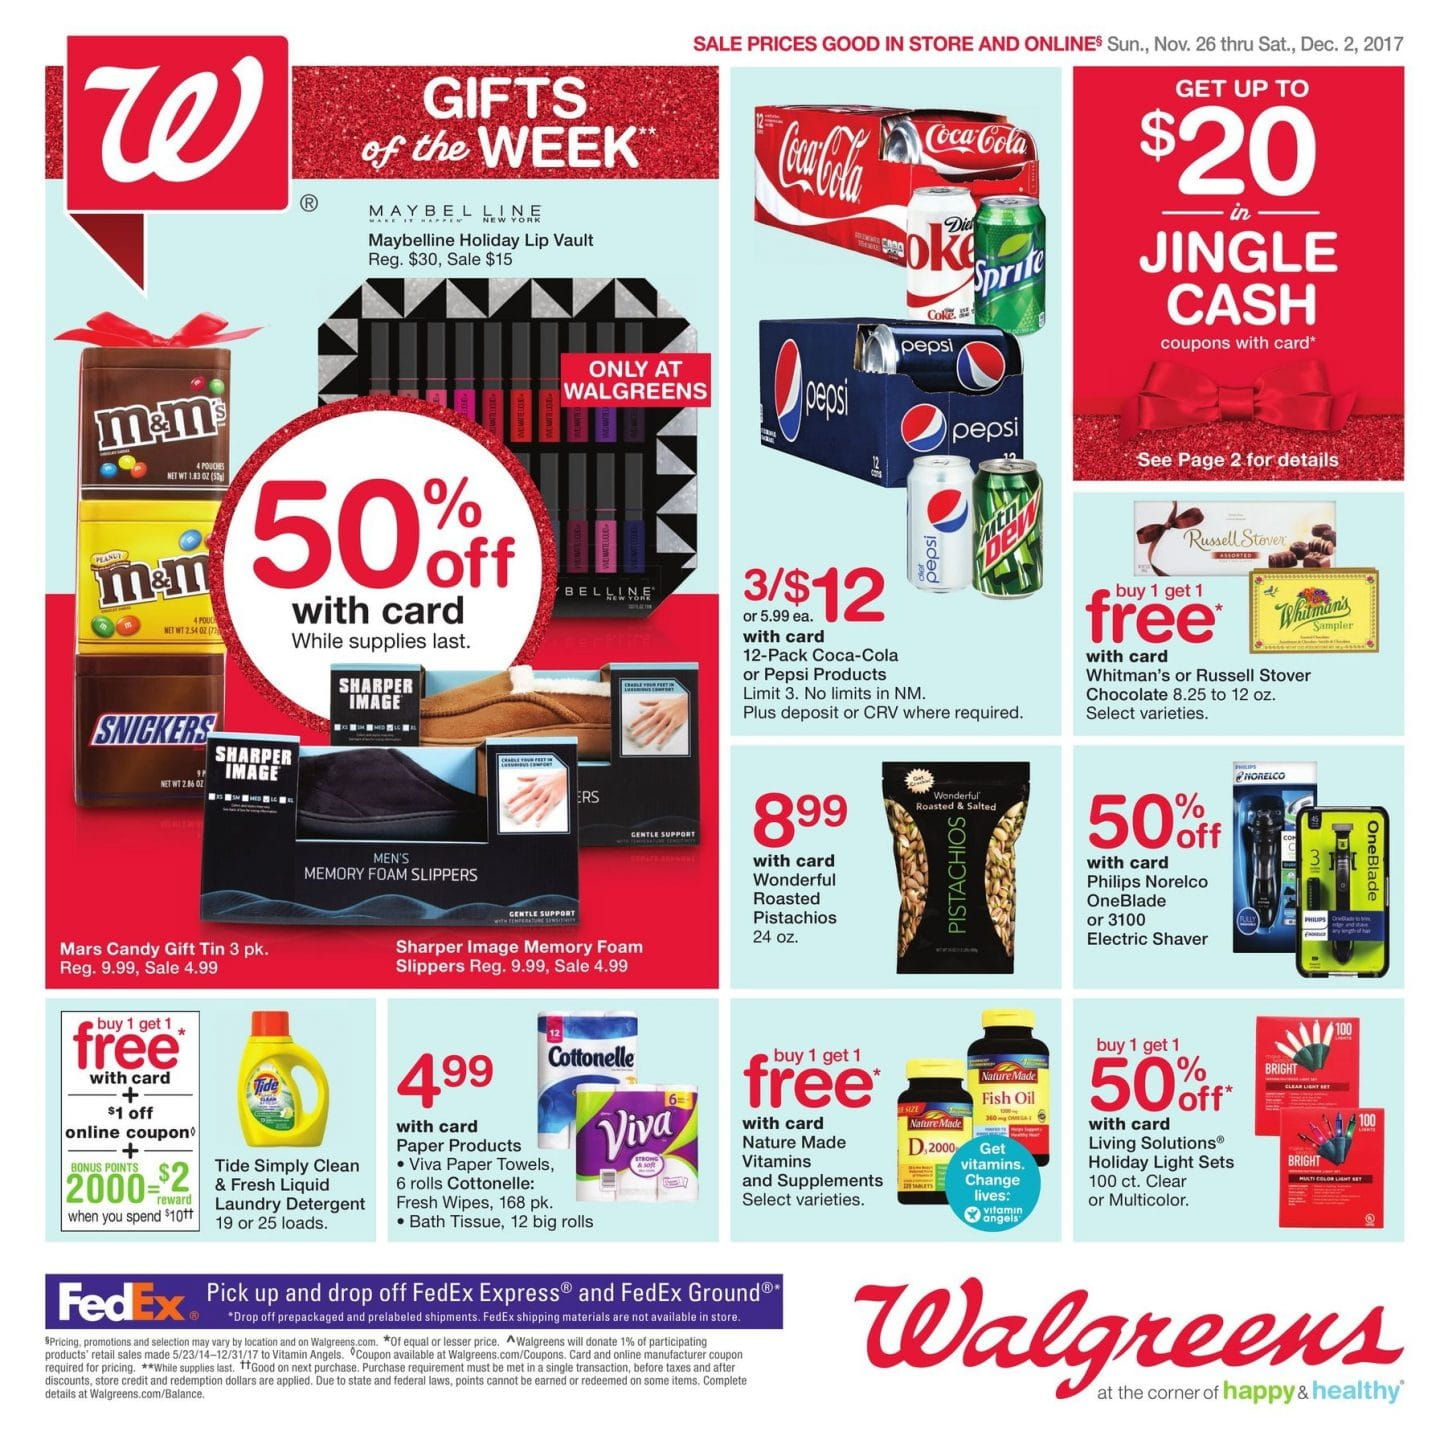 Walgreens Cyber Monday